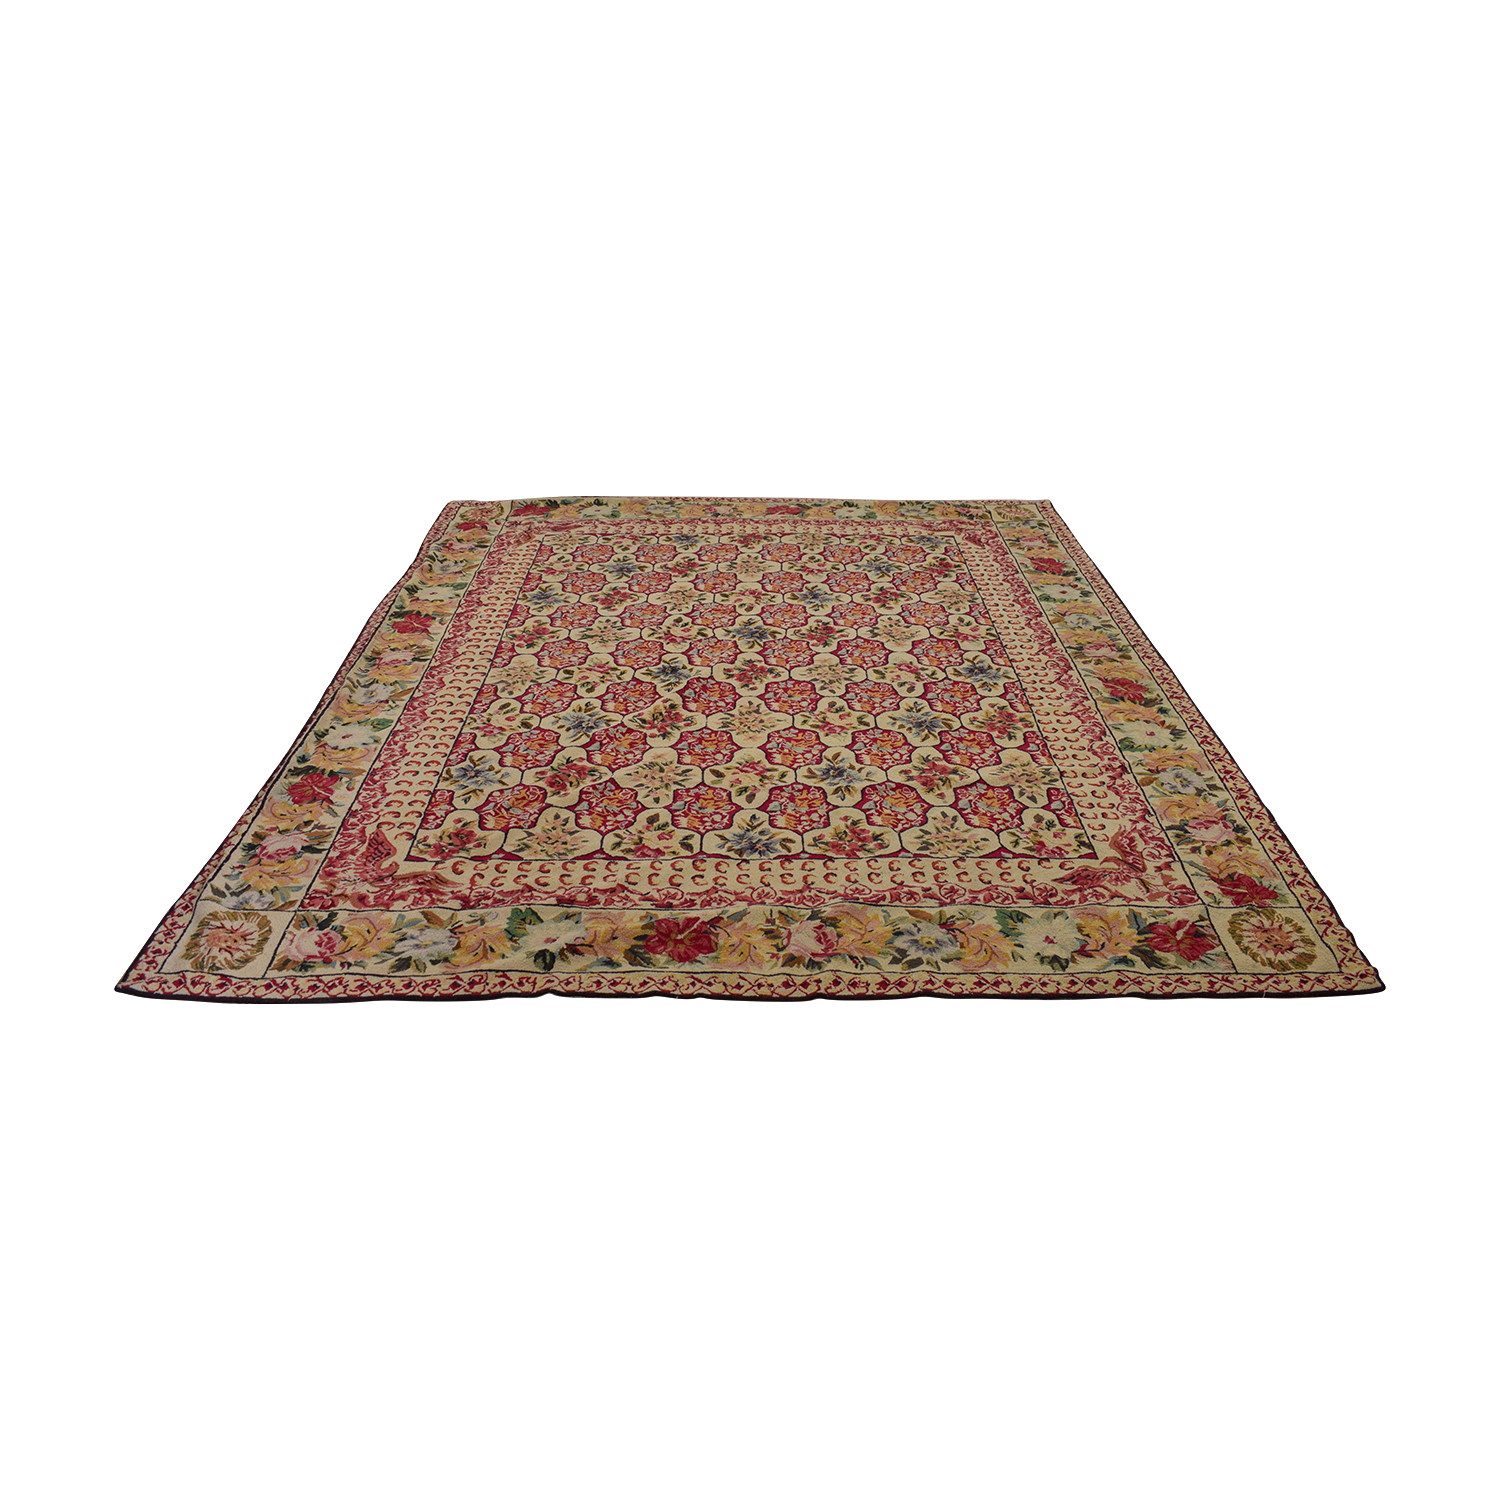 Multi-Color Flowered Area Rug second hand